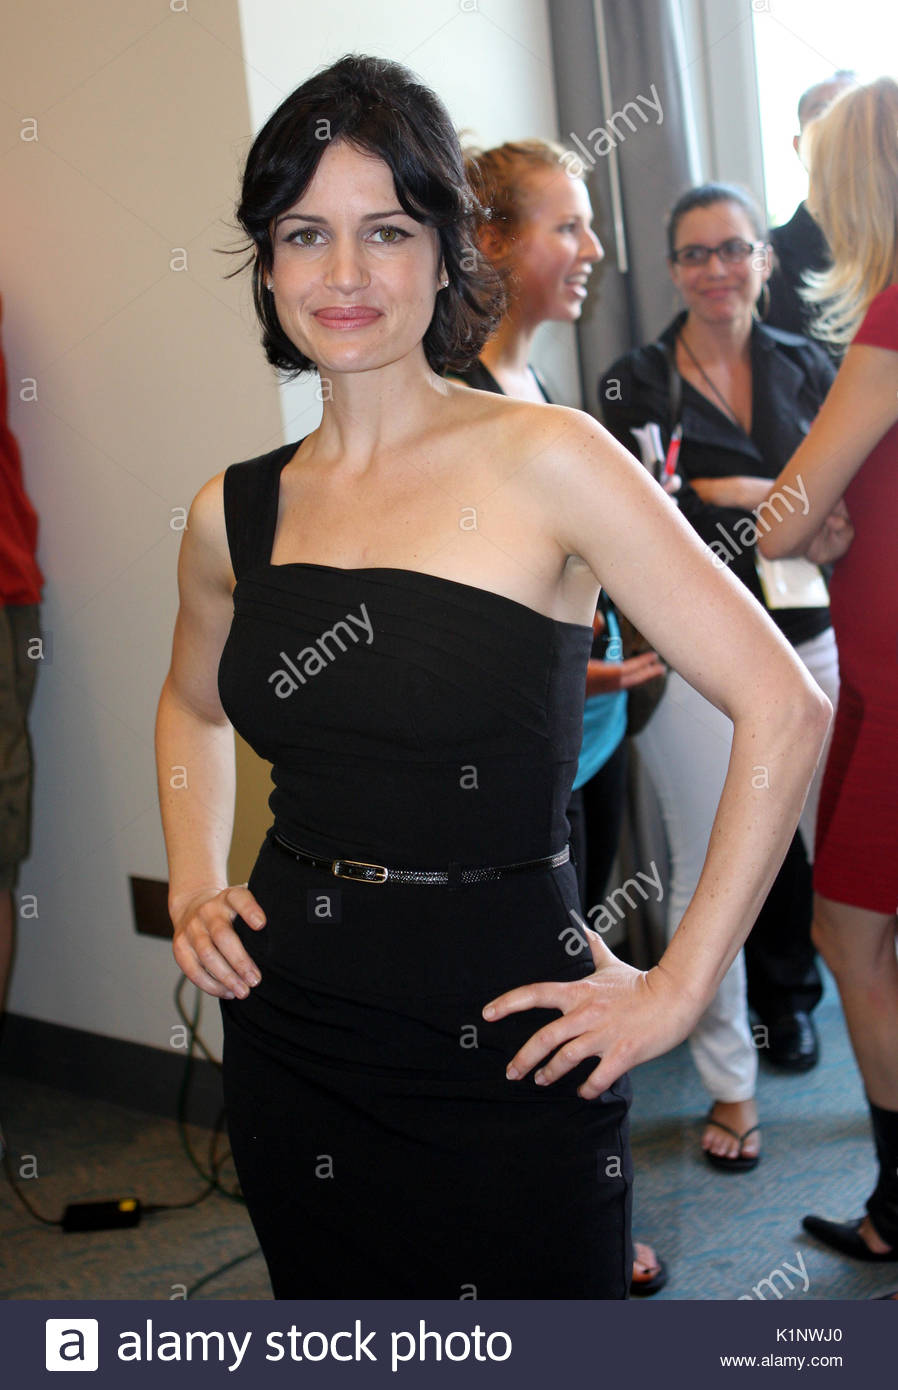 Carla gugino the cast of the watchmen press junket at the san the cast of the watchmen press junket at the san diego comic con ccuart Image collections